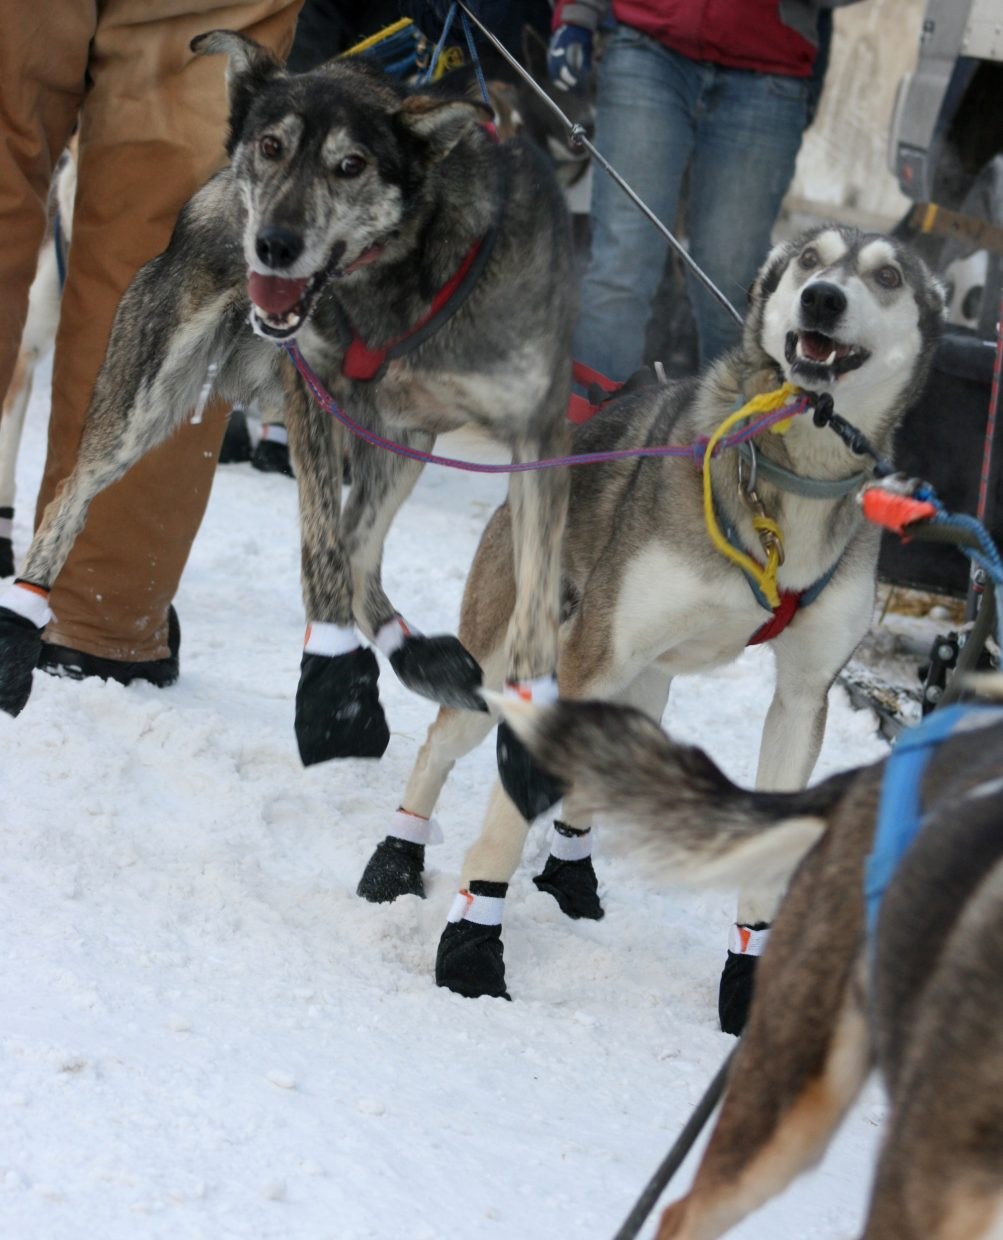 Sled dogs, or Alaskan Huskies, which is the type of dog Hoffman and Thurston race, metabolize food at such an efficient rate that at the end of a long race, the dogs actually run stronger and faster than at the beginning.